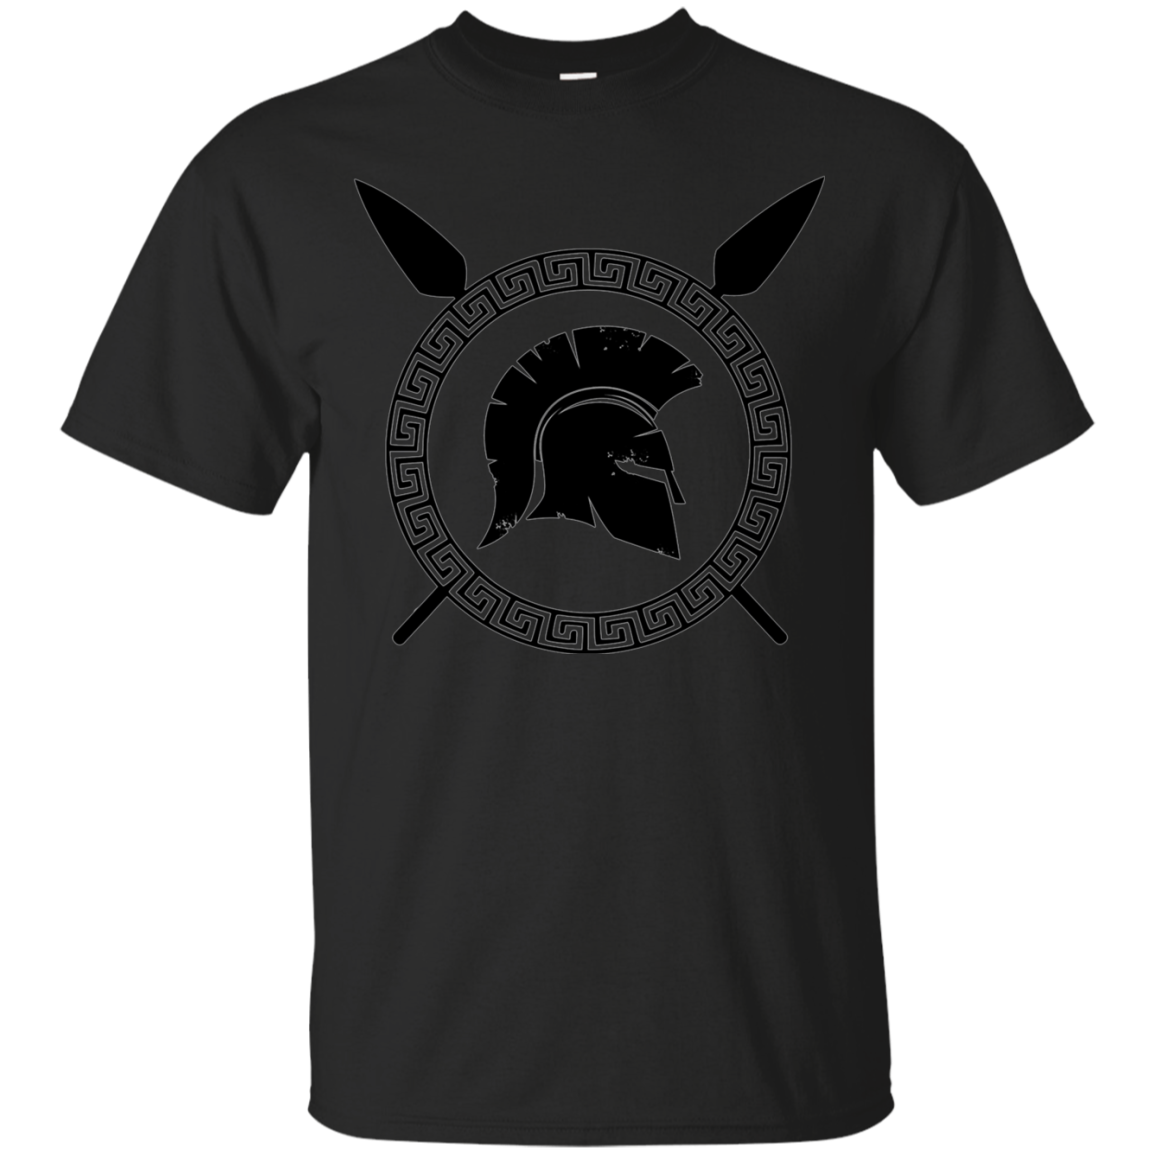 Spartan Warrior Ancient Elite T-shirt